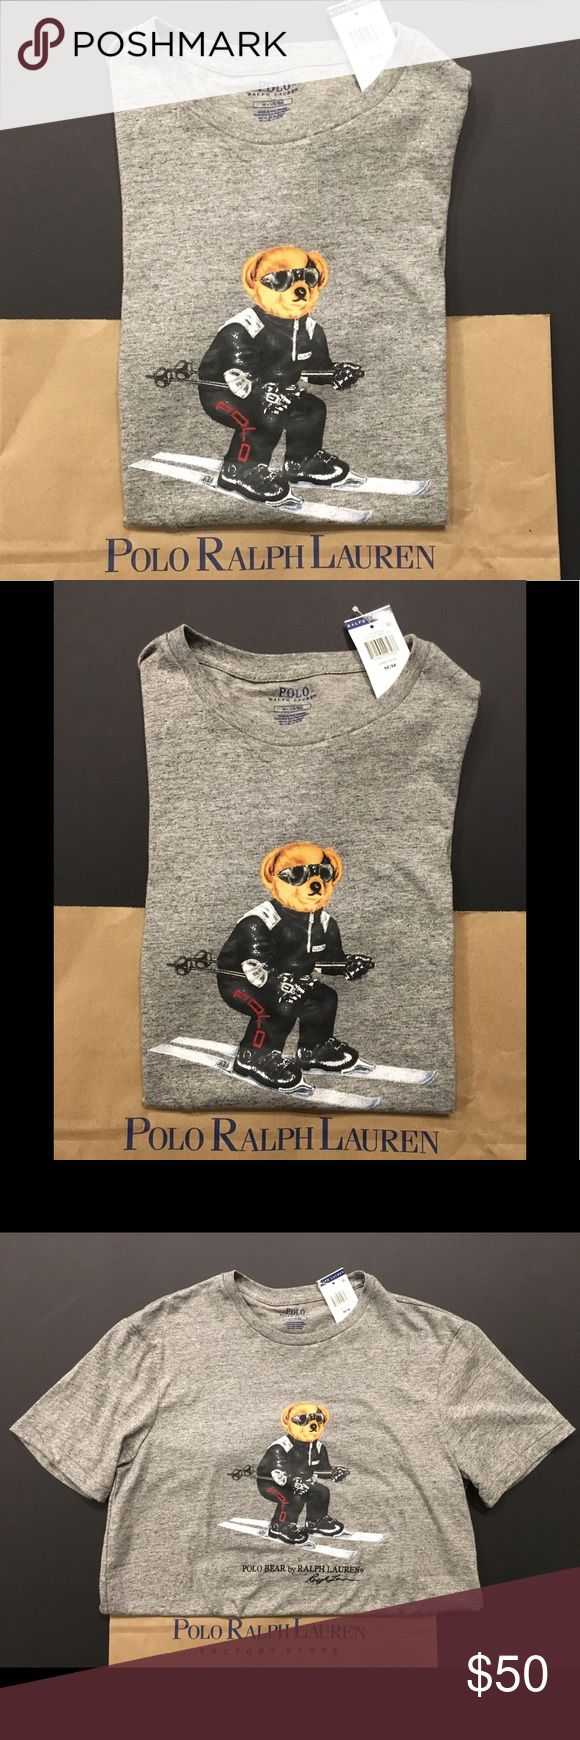 Ralph Lauren Polo Bear Ski Bear T Shirt THESE ARE MY PHOTOS TAKEN BY ME  Limited Edition, sold out everywhere!  Up for sale is one Brand New Men's Polo Ralph Lauren Polo Bear Ski Bear T-Shirt, Item comes brand new with tags!  I have Small, Large, and XL  100% Authentic Polo Ralph Lauren  Polo Bear Logo on Front  Gray  100% Cotton  FAST SHIPPING! Polo by Ralph Lauren Shirts Tees - Short Sleeve